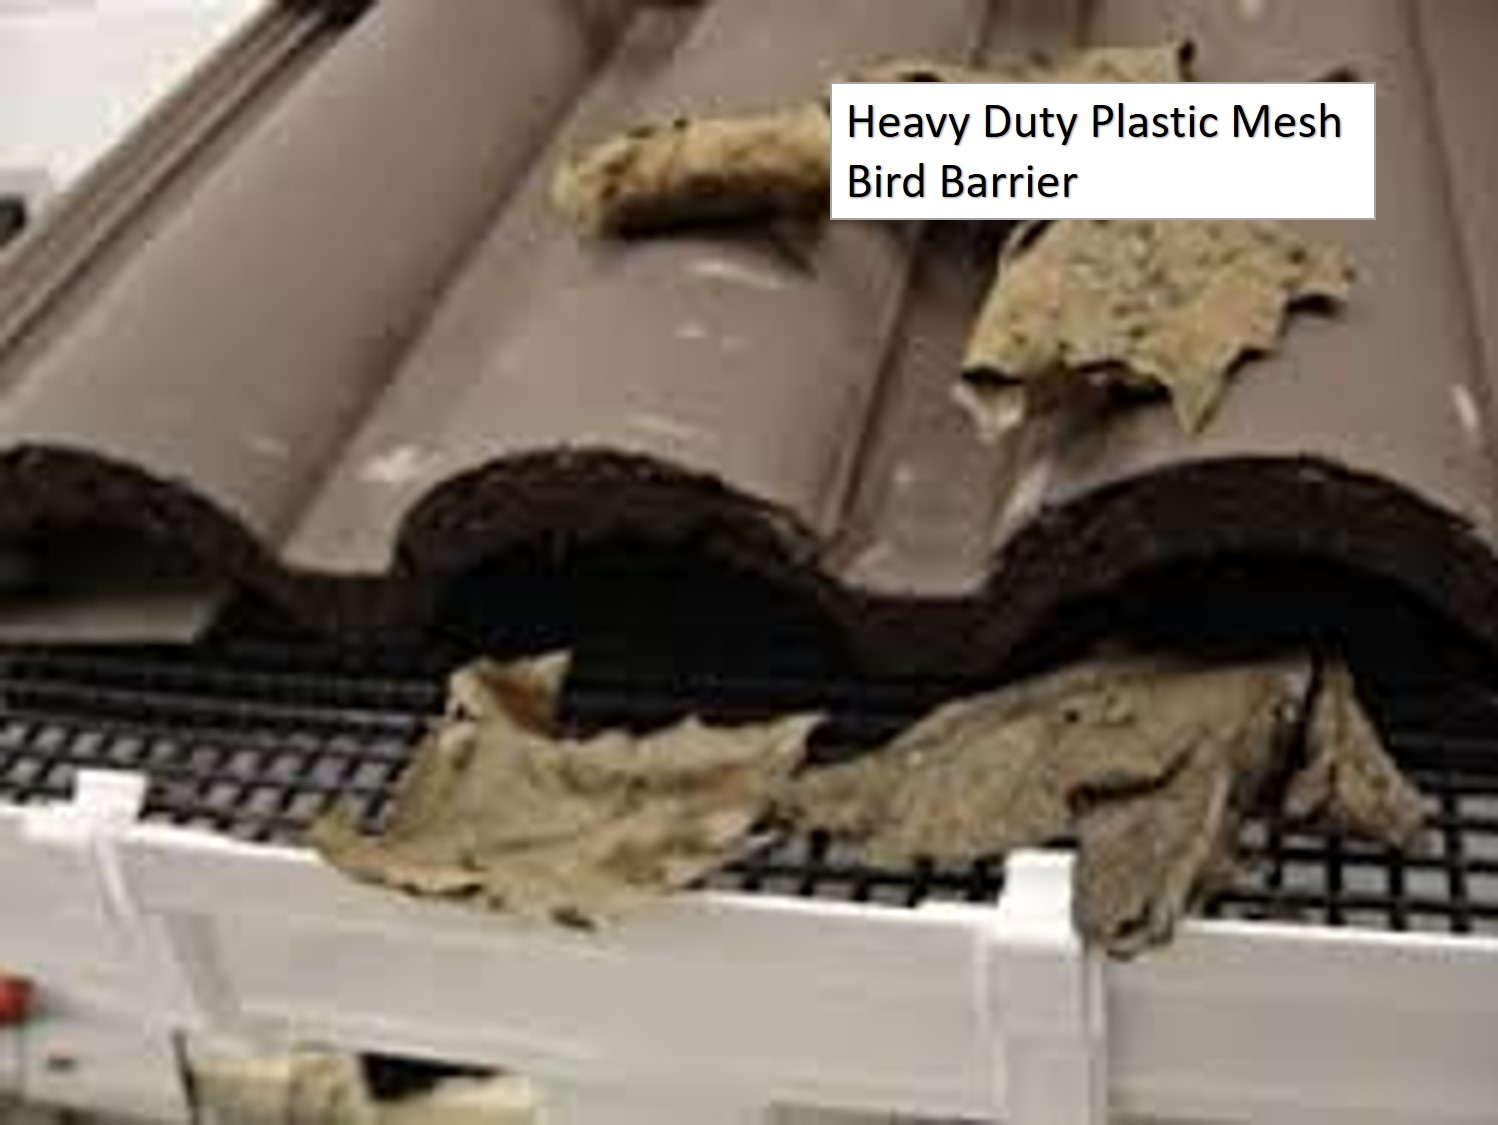 Heavy Duty Plastic Mesh Bird Barrier